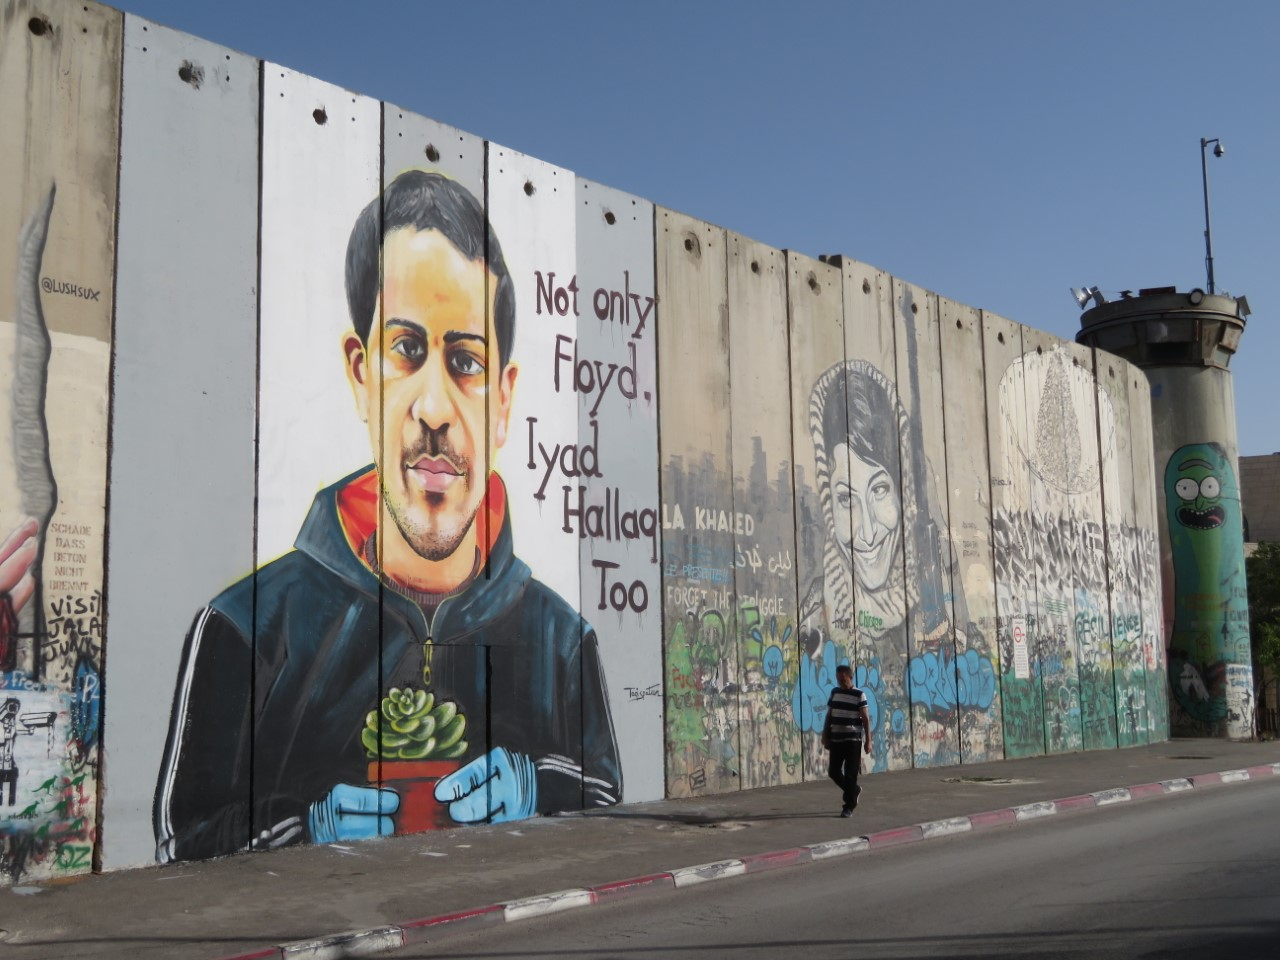 An image of Iyad al-Hallaq, painted on the Separation Barrier inside Bethlehem by Palestinian artist Taqi Spateen.